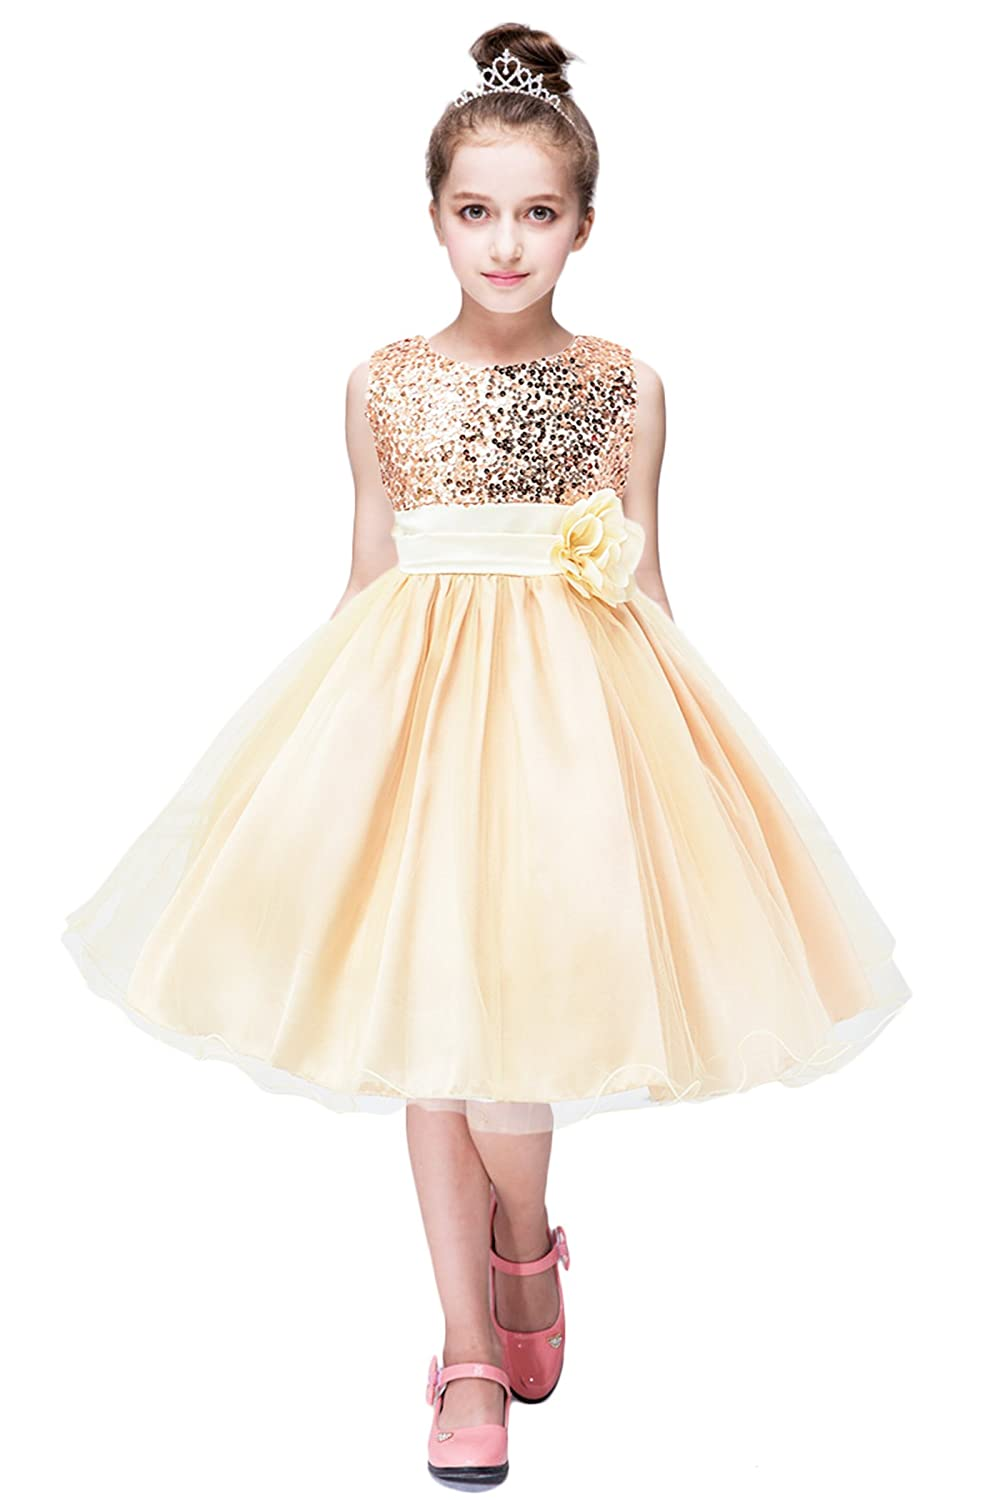 27a16b31b26 Amazon.com  YMING Girls Flower Sequin Princess Dress Sleeveless Tutu Tulle  Birthday Party Dress  Clothing